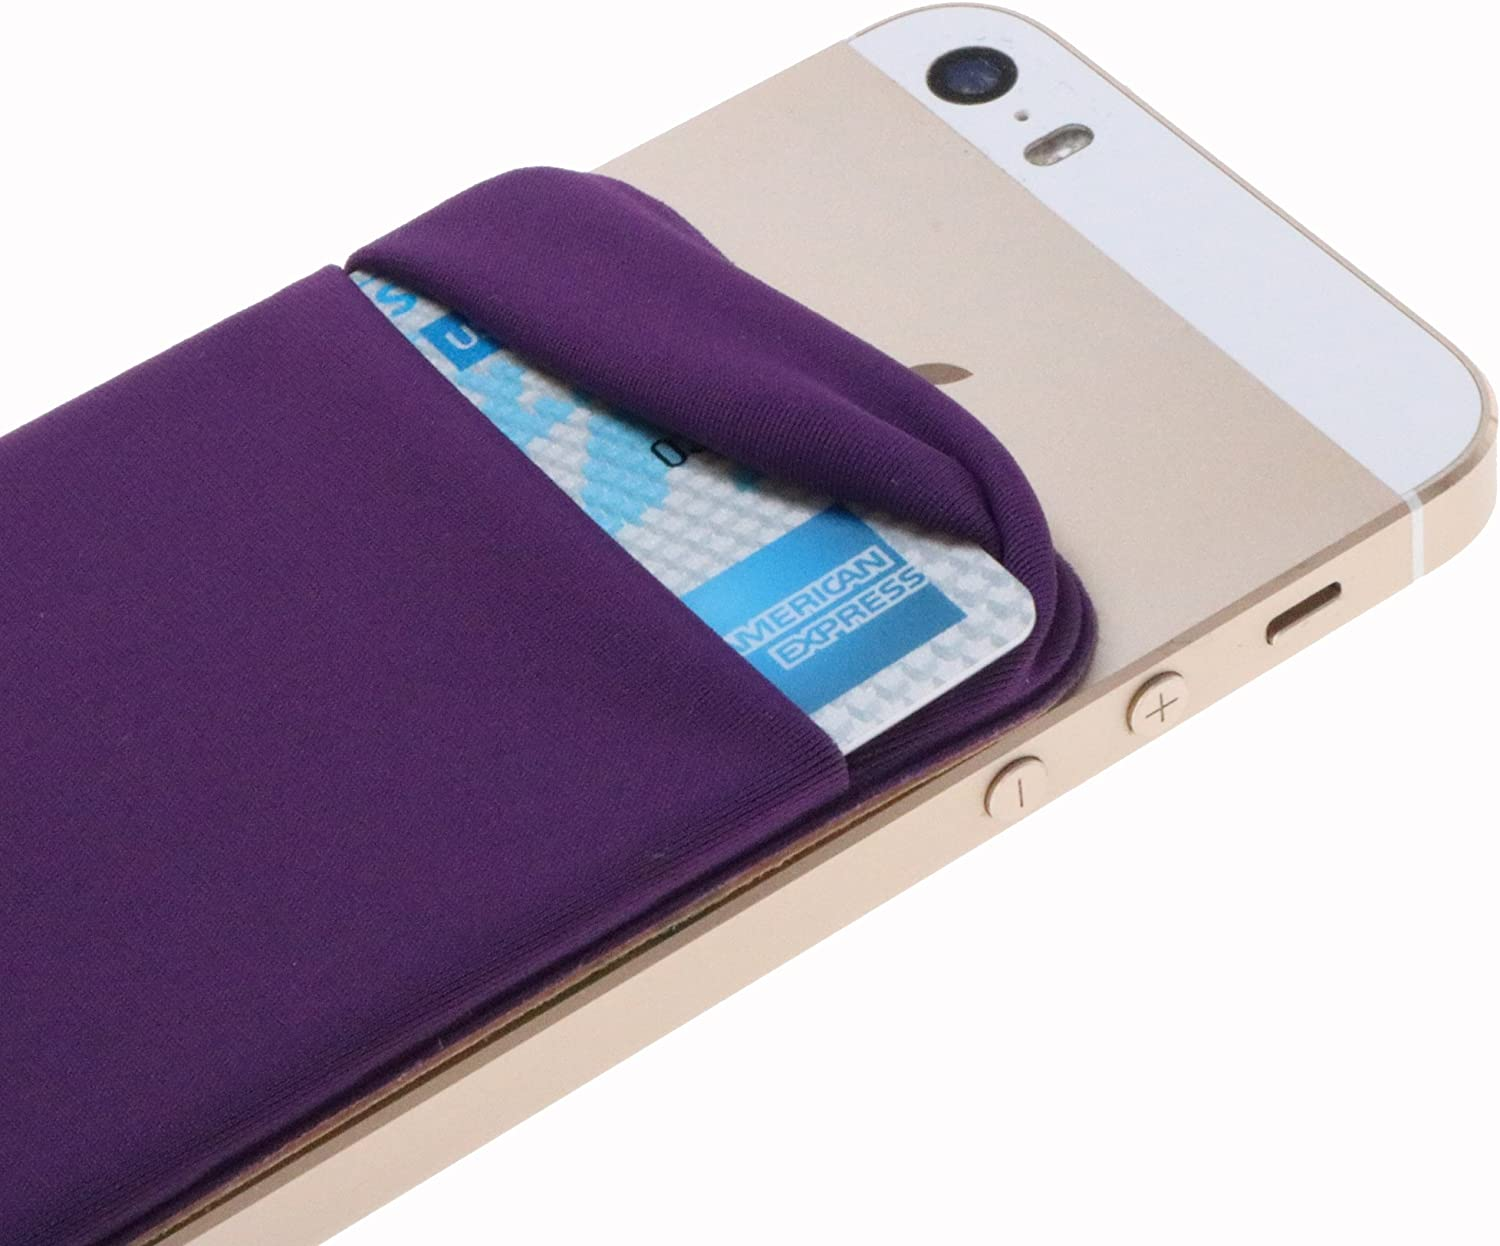 Case Art Plus Credit Card Secure Holder Stick on Wallet [ Lid ] Discreet ID Holder Lycra Spandex Card Sleeves for Smartphones, iPhone 6, Samsung Galaxy Cell Phone Wallet Case 3M Adhesive (Purple)